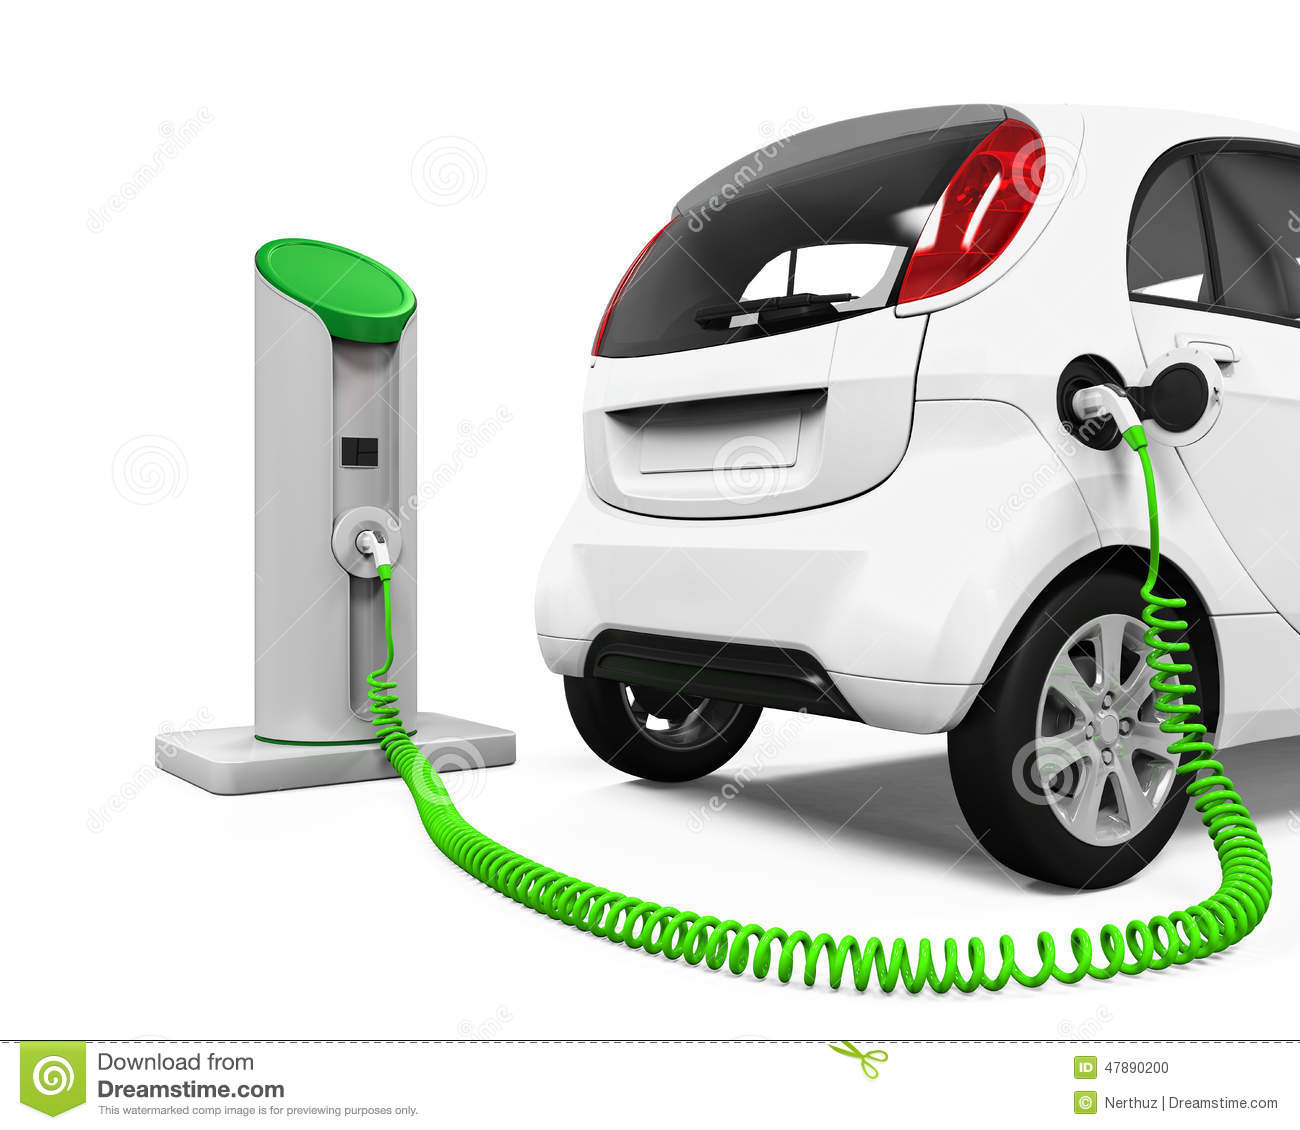 Electric car clipart no background.